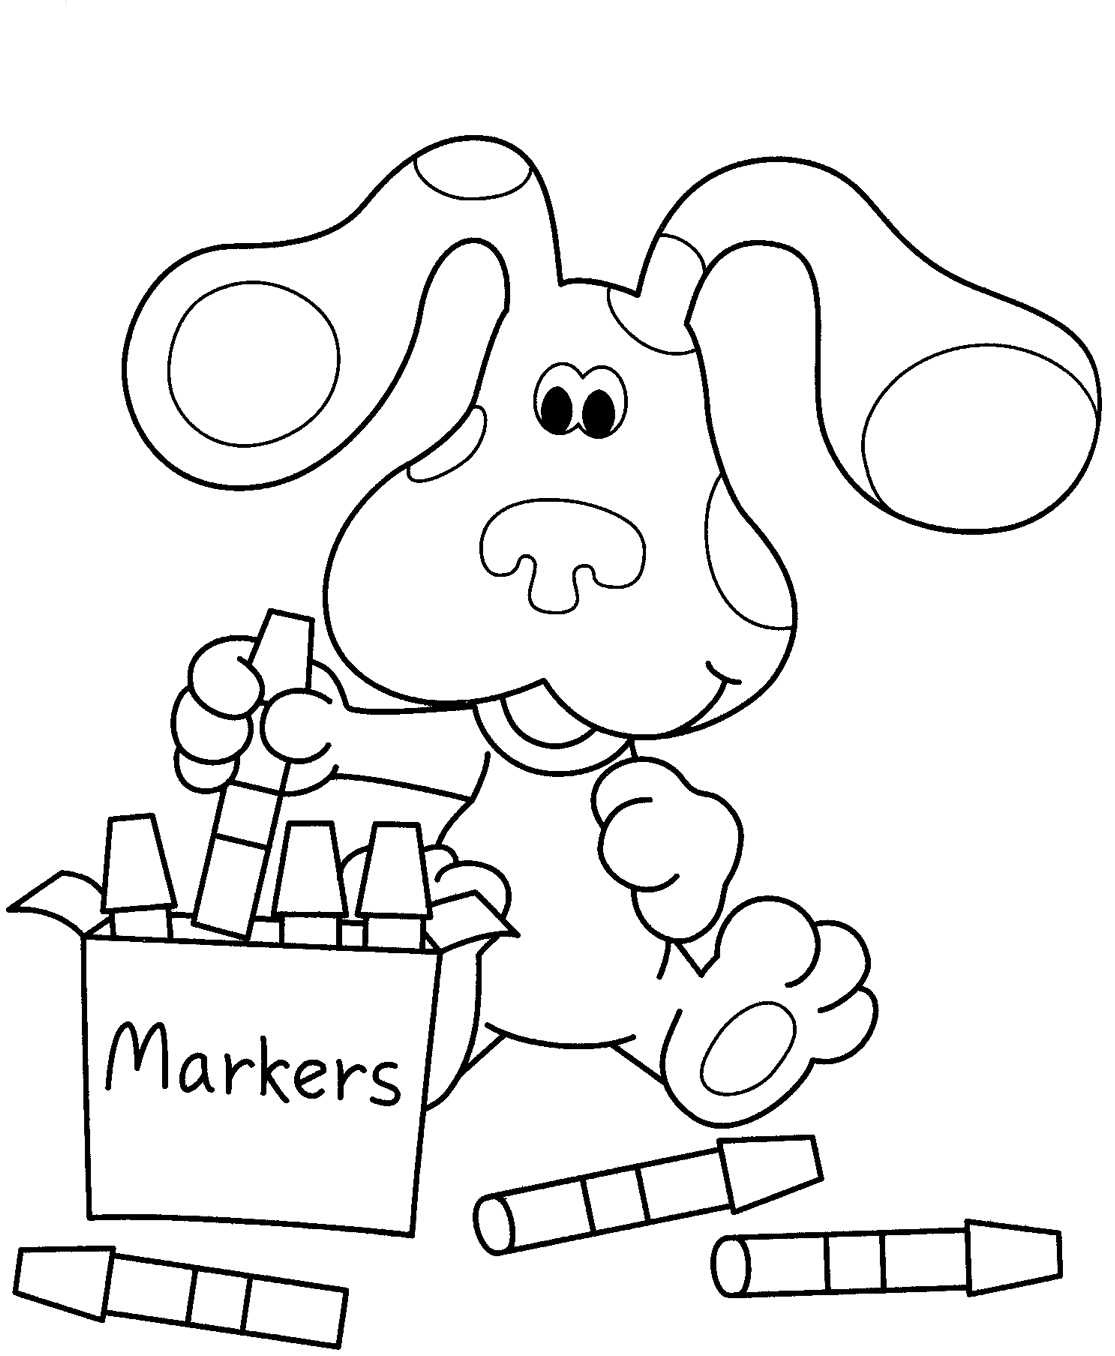 blues-clues coloring pages,printable,coloring pages